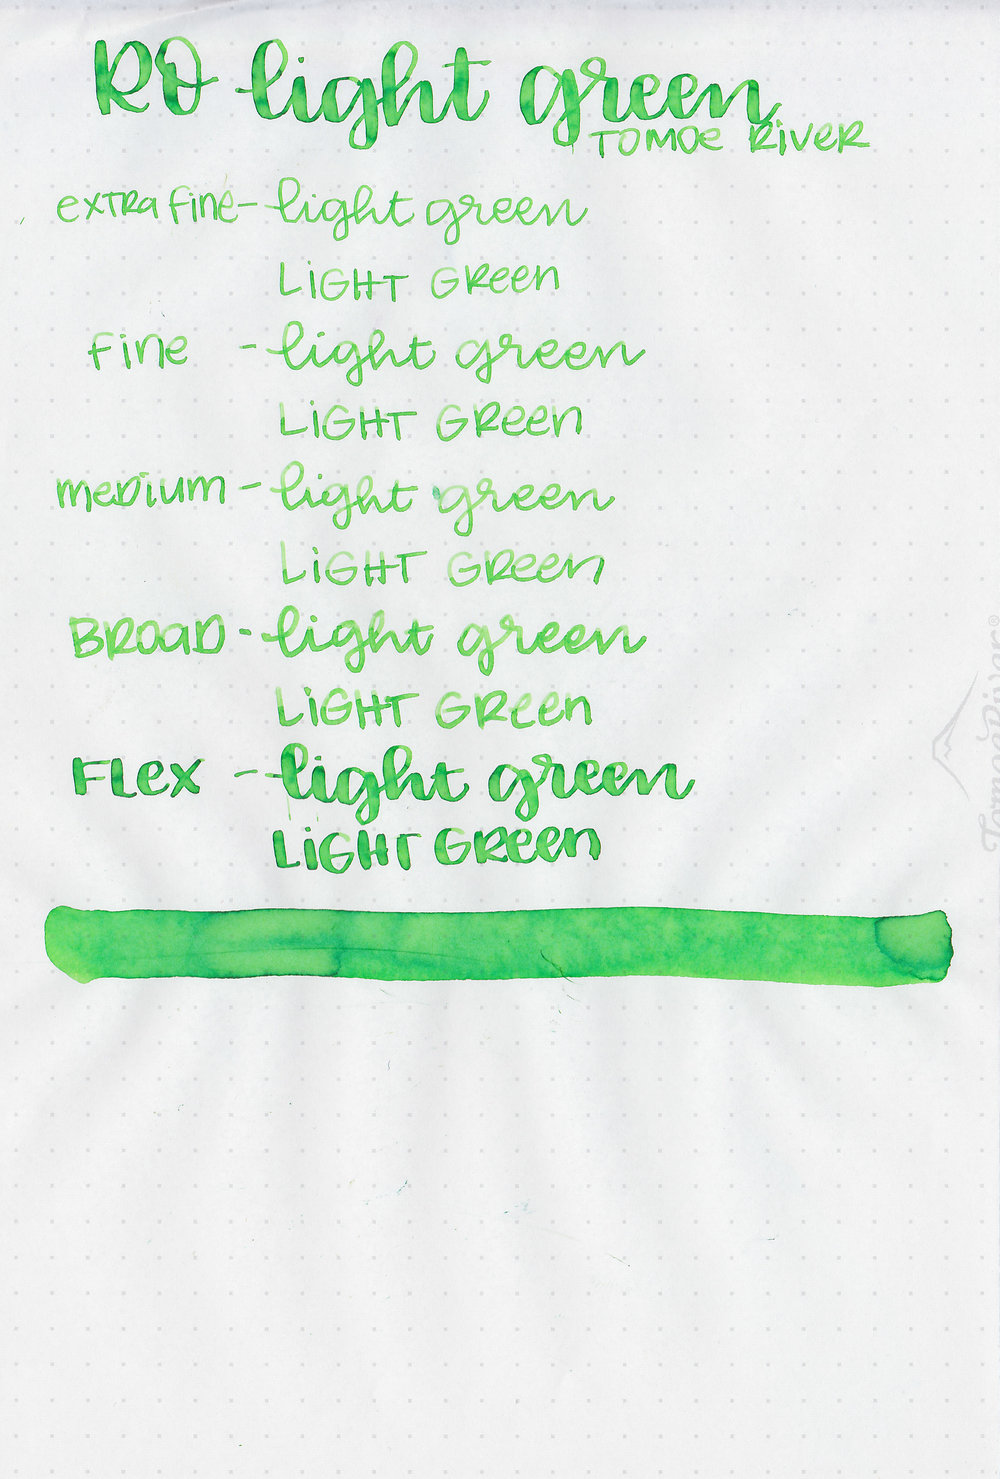 ro-light-green-11.jpg